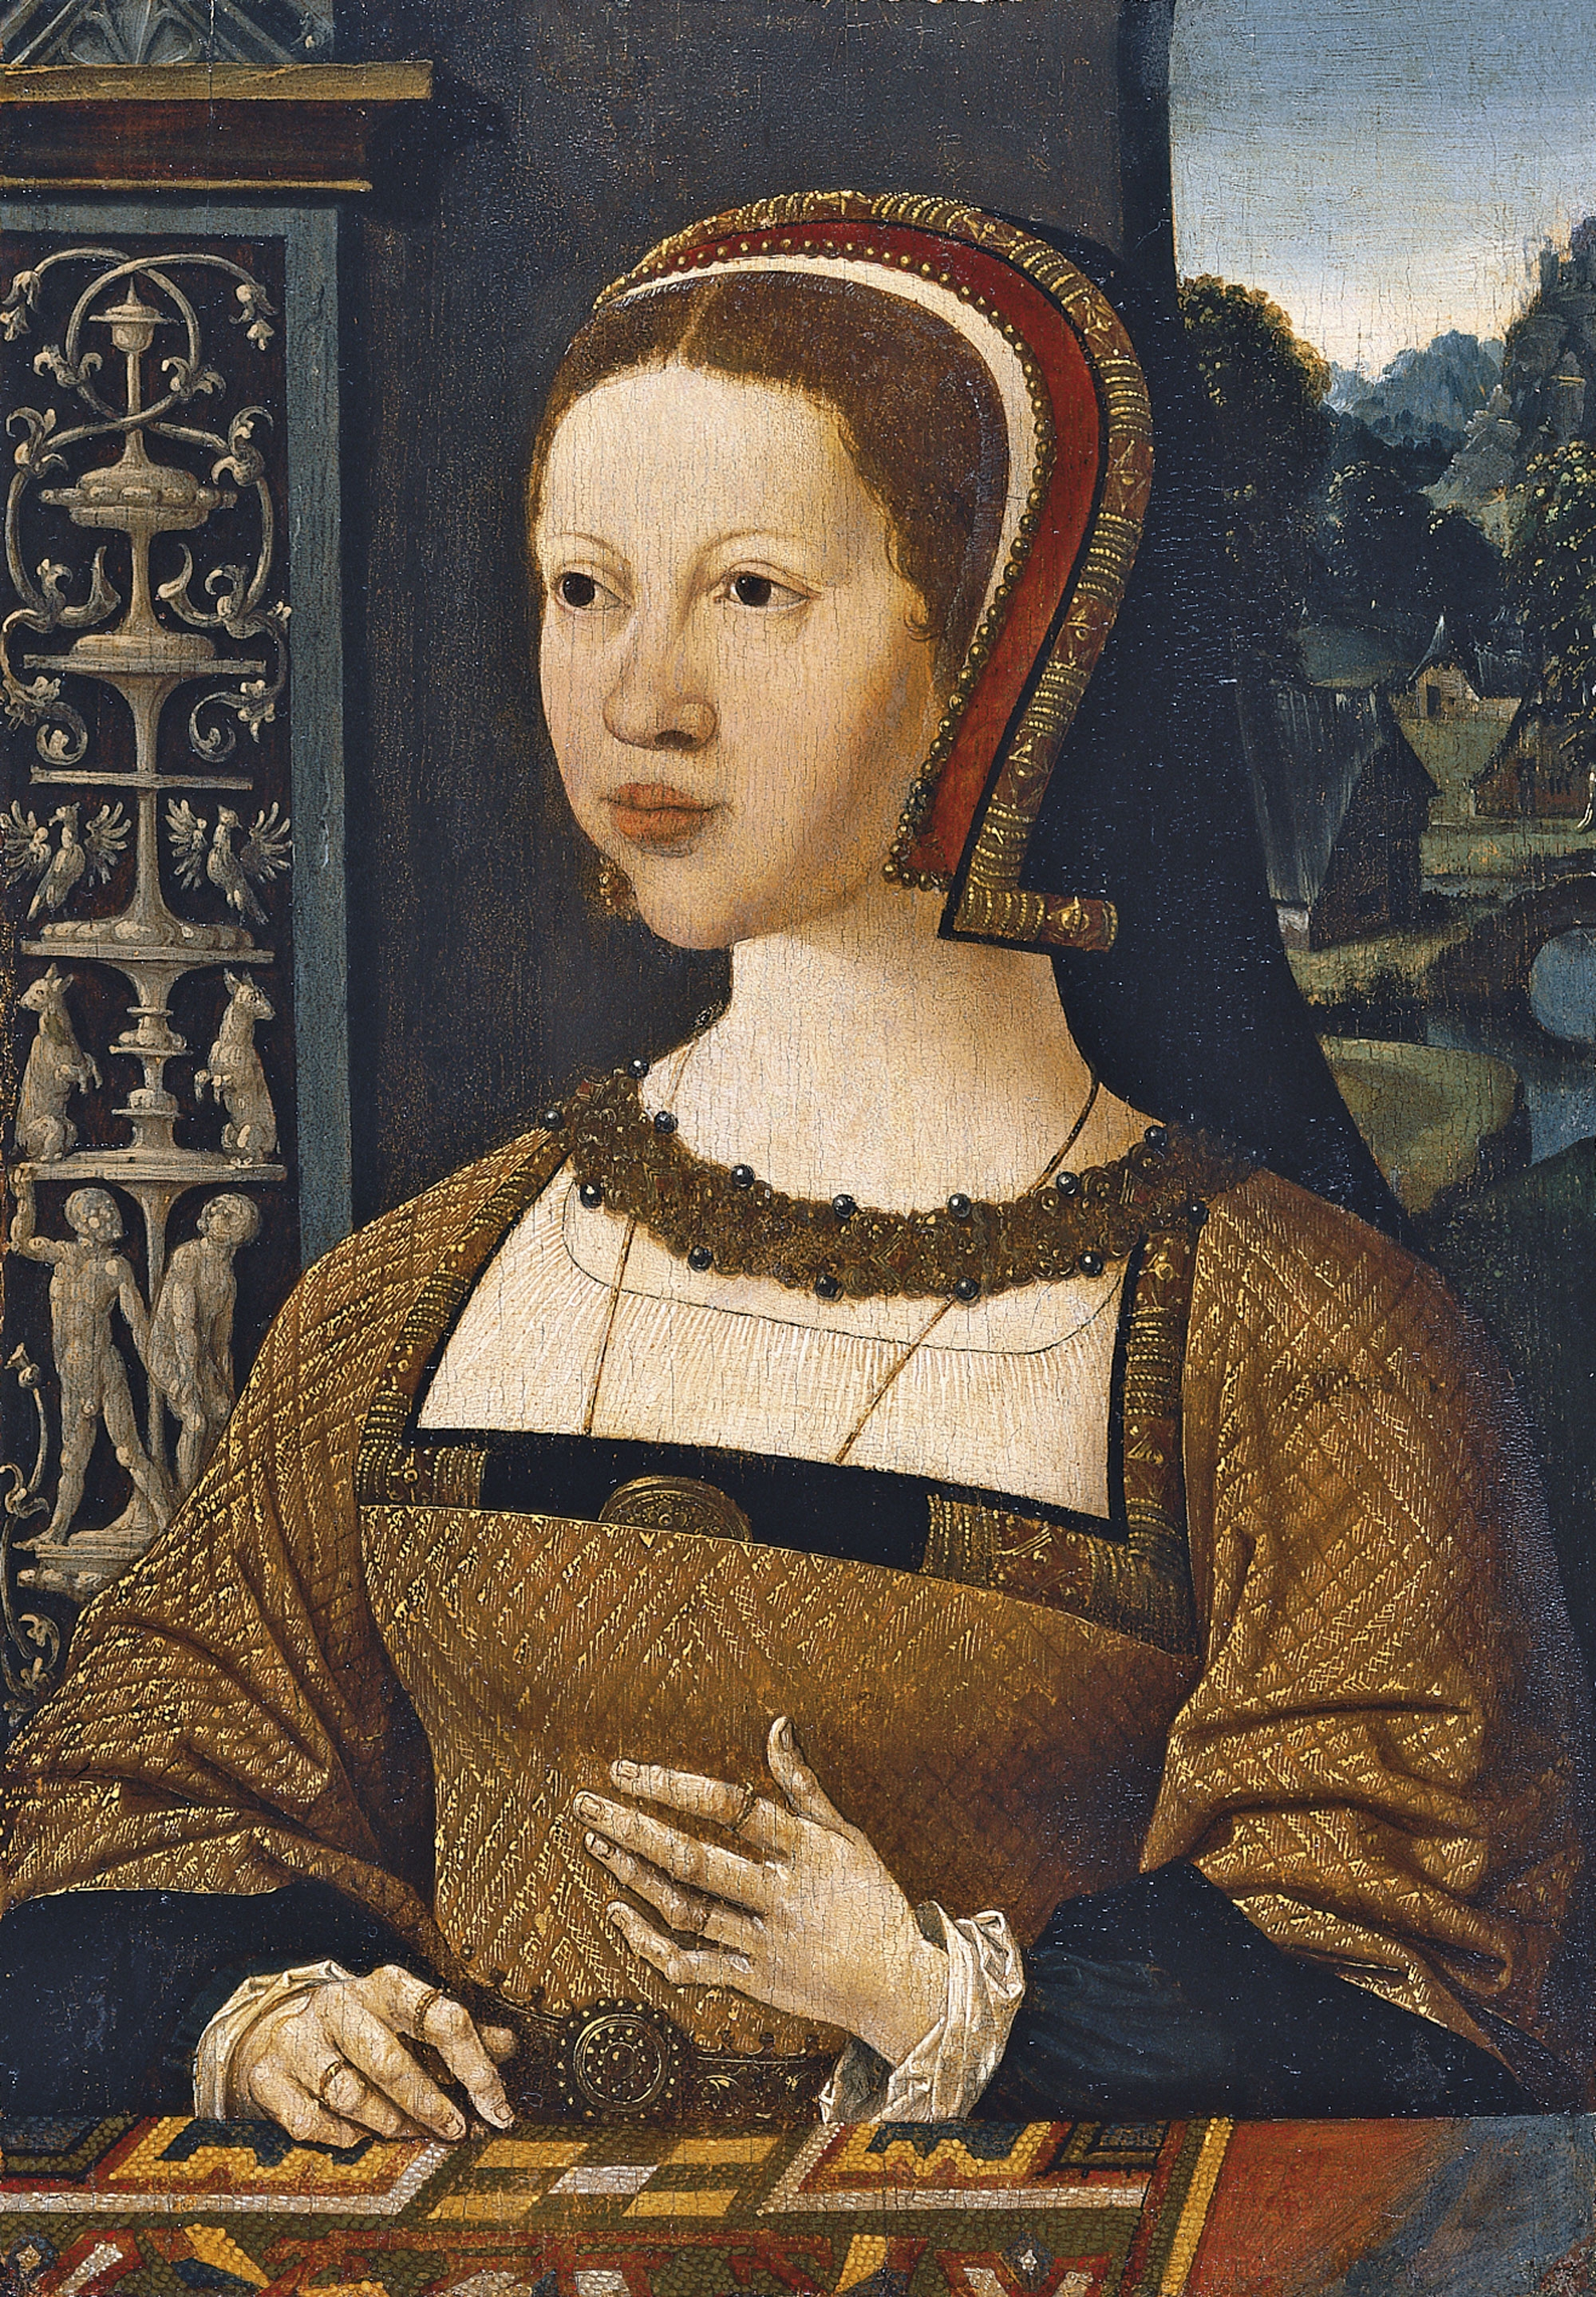 1524 - unknown, possibly Elizabeth of Denmark or Isabel de Dinamarca